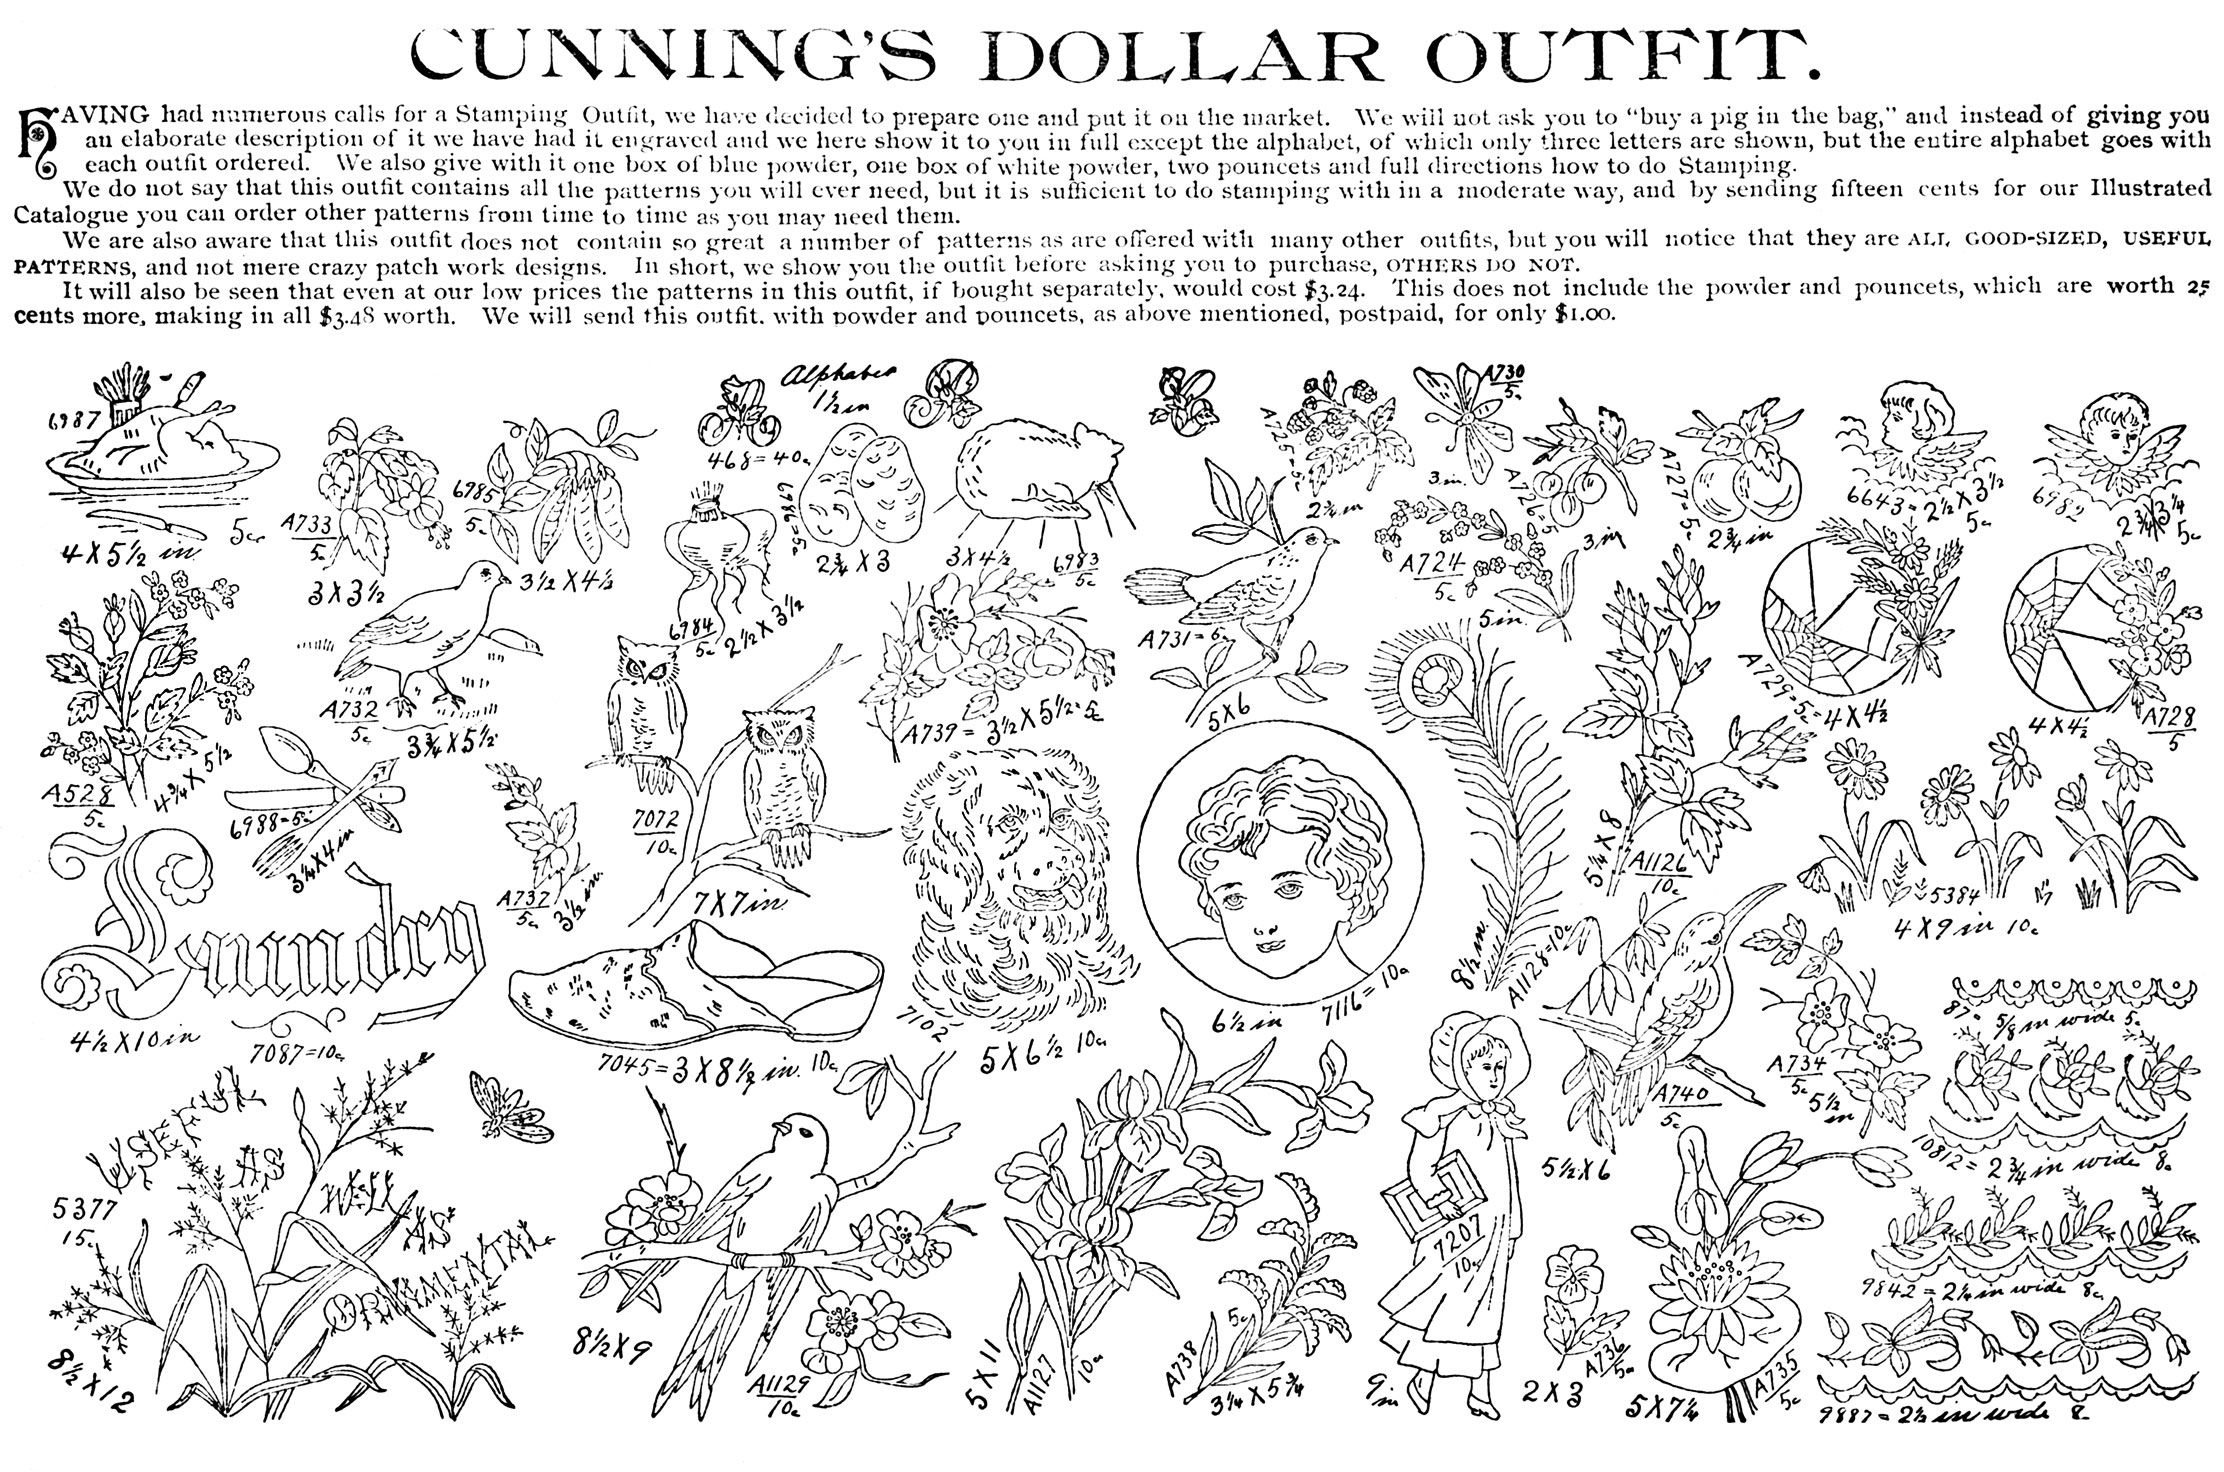 Cunning S Perforated Stamping Patterns Catalog